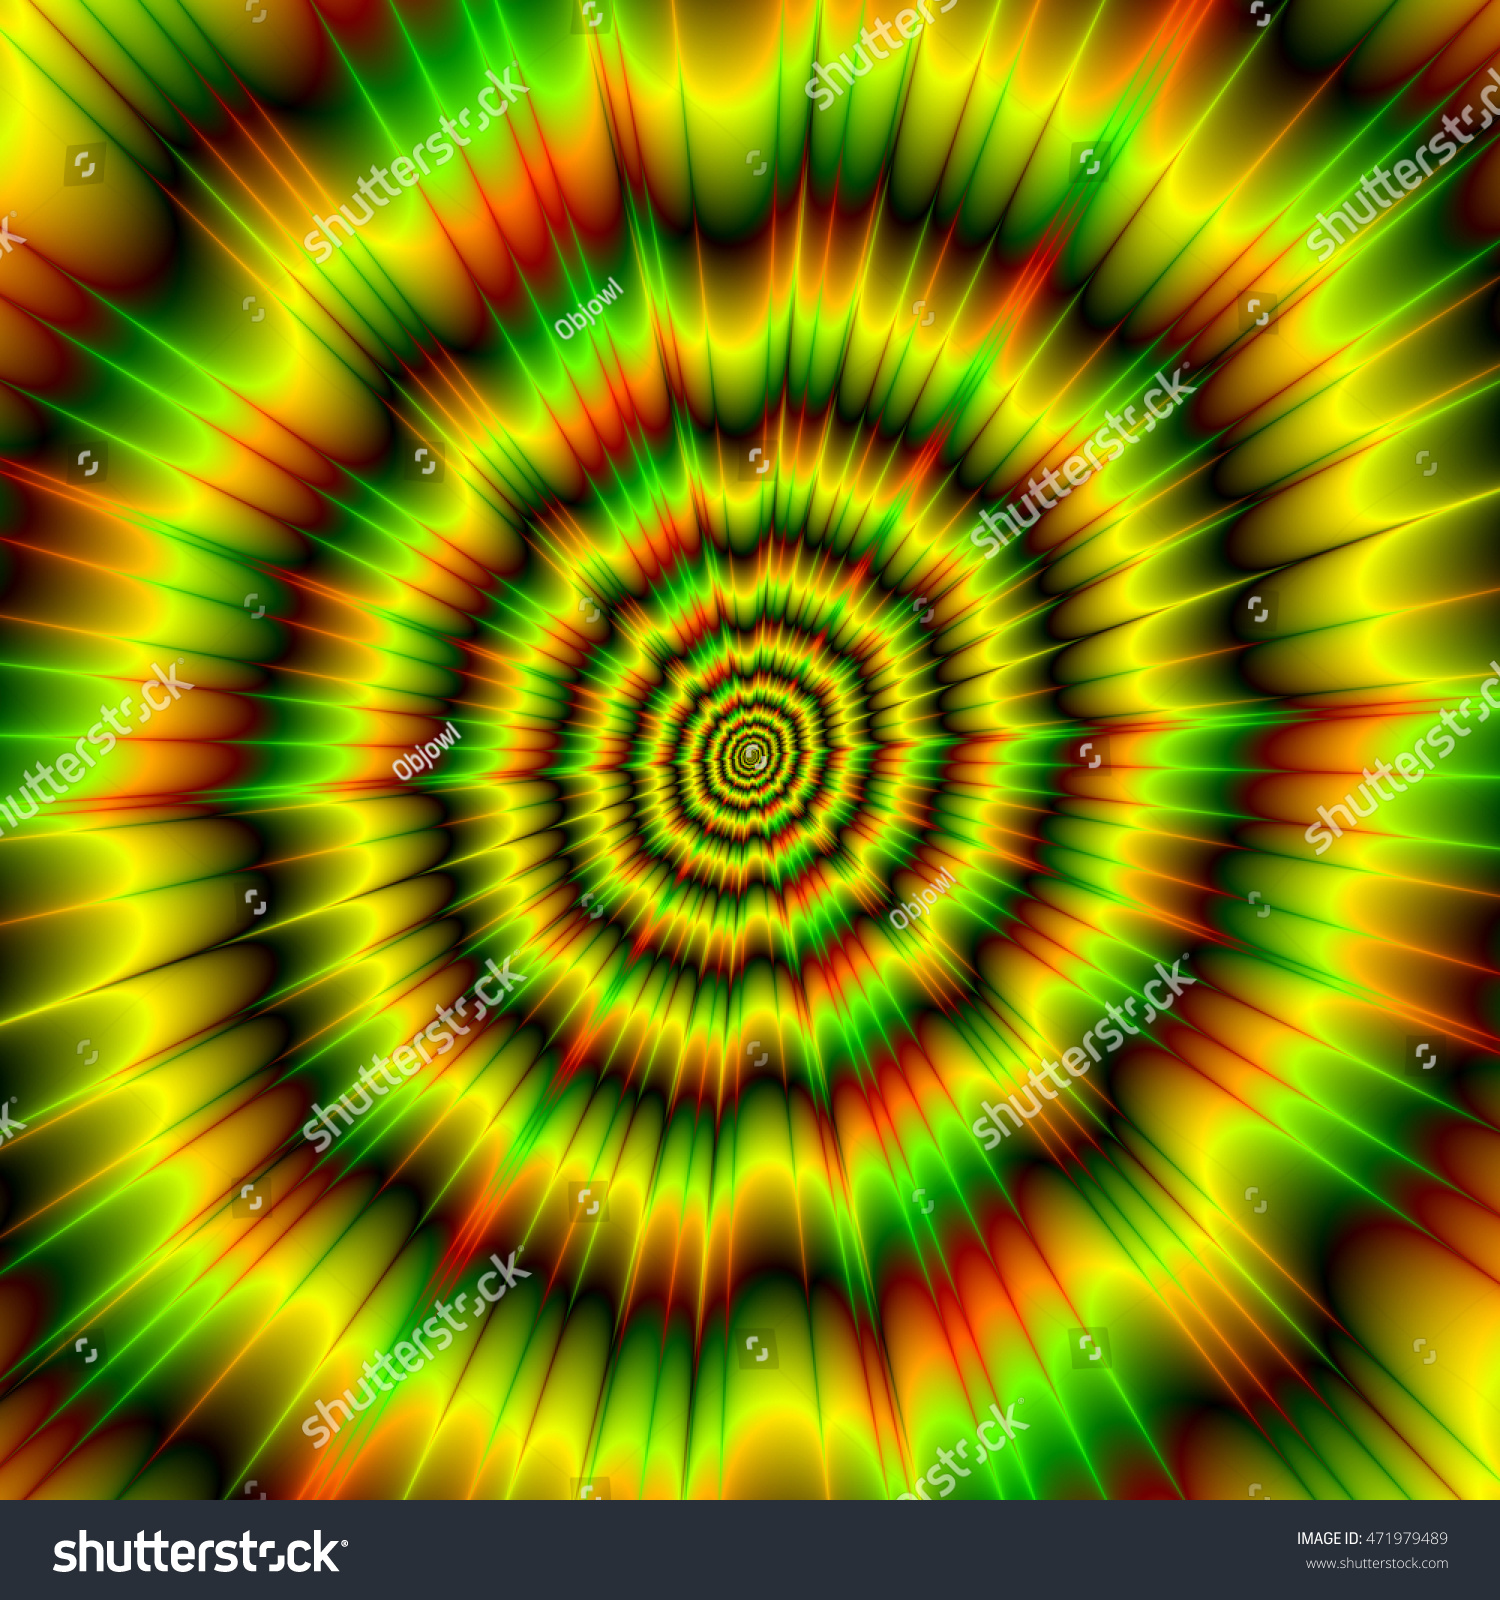 Royalty Free Stock Illustration of Color Explosion Yellow Green Red ...